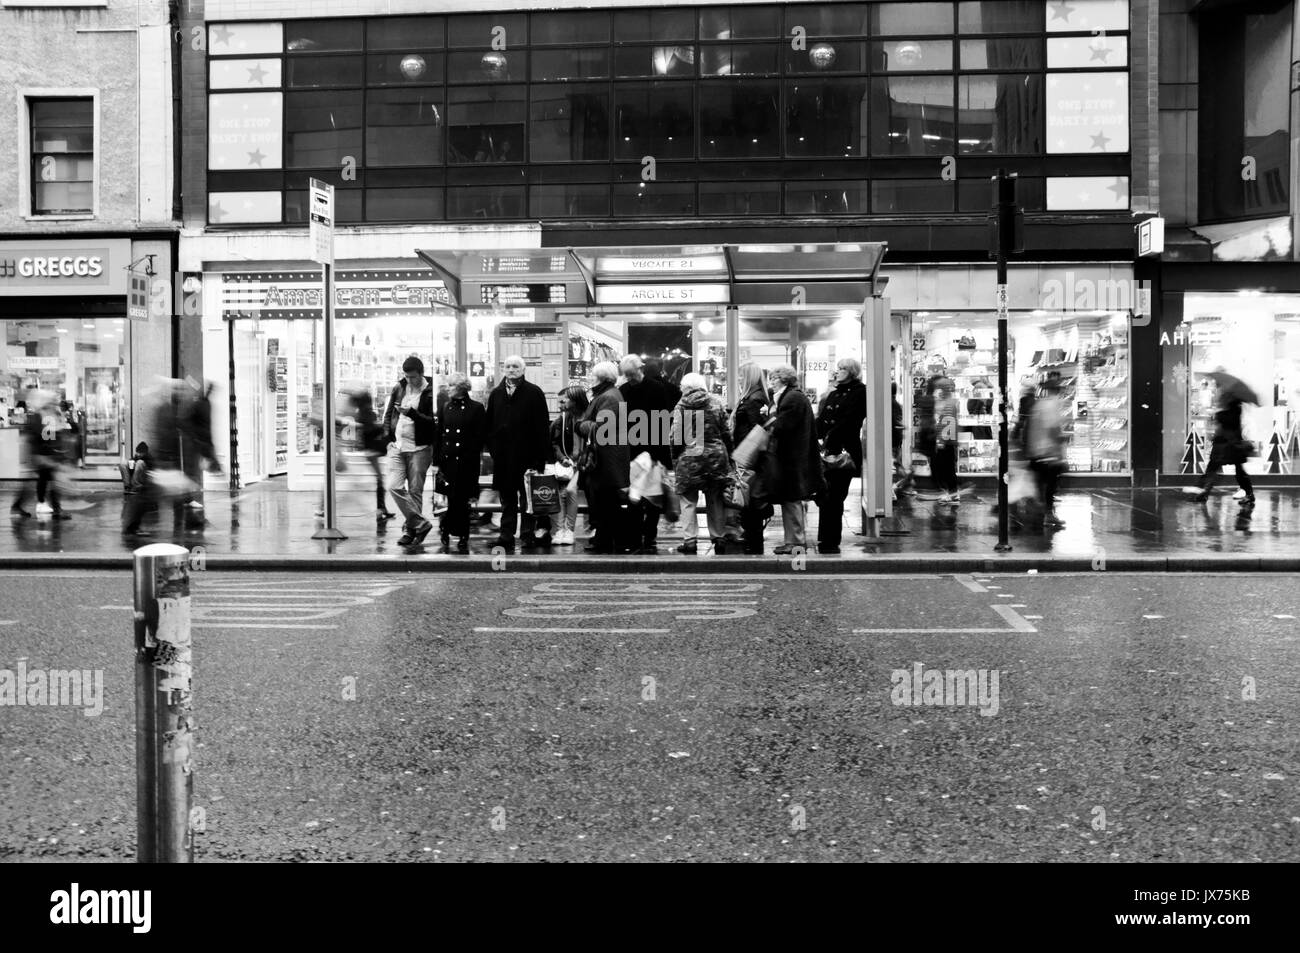 People waiting at bus stop in central Glasgow. - Stock Image